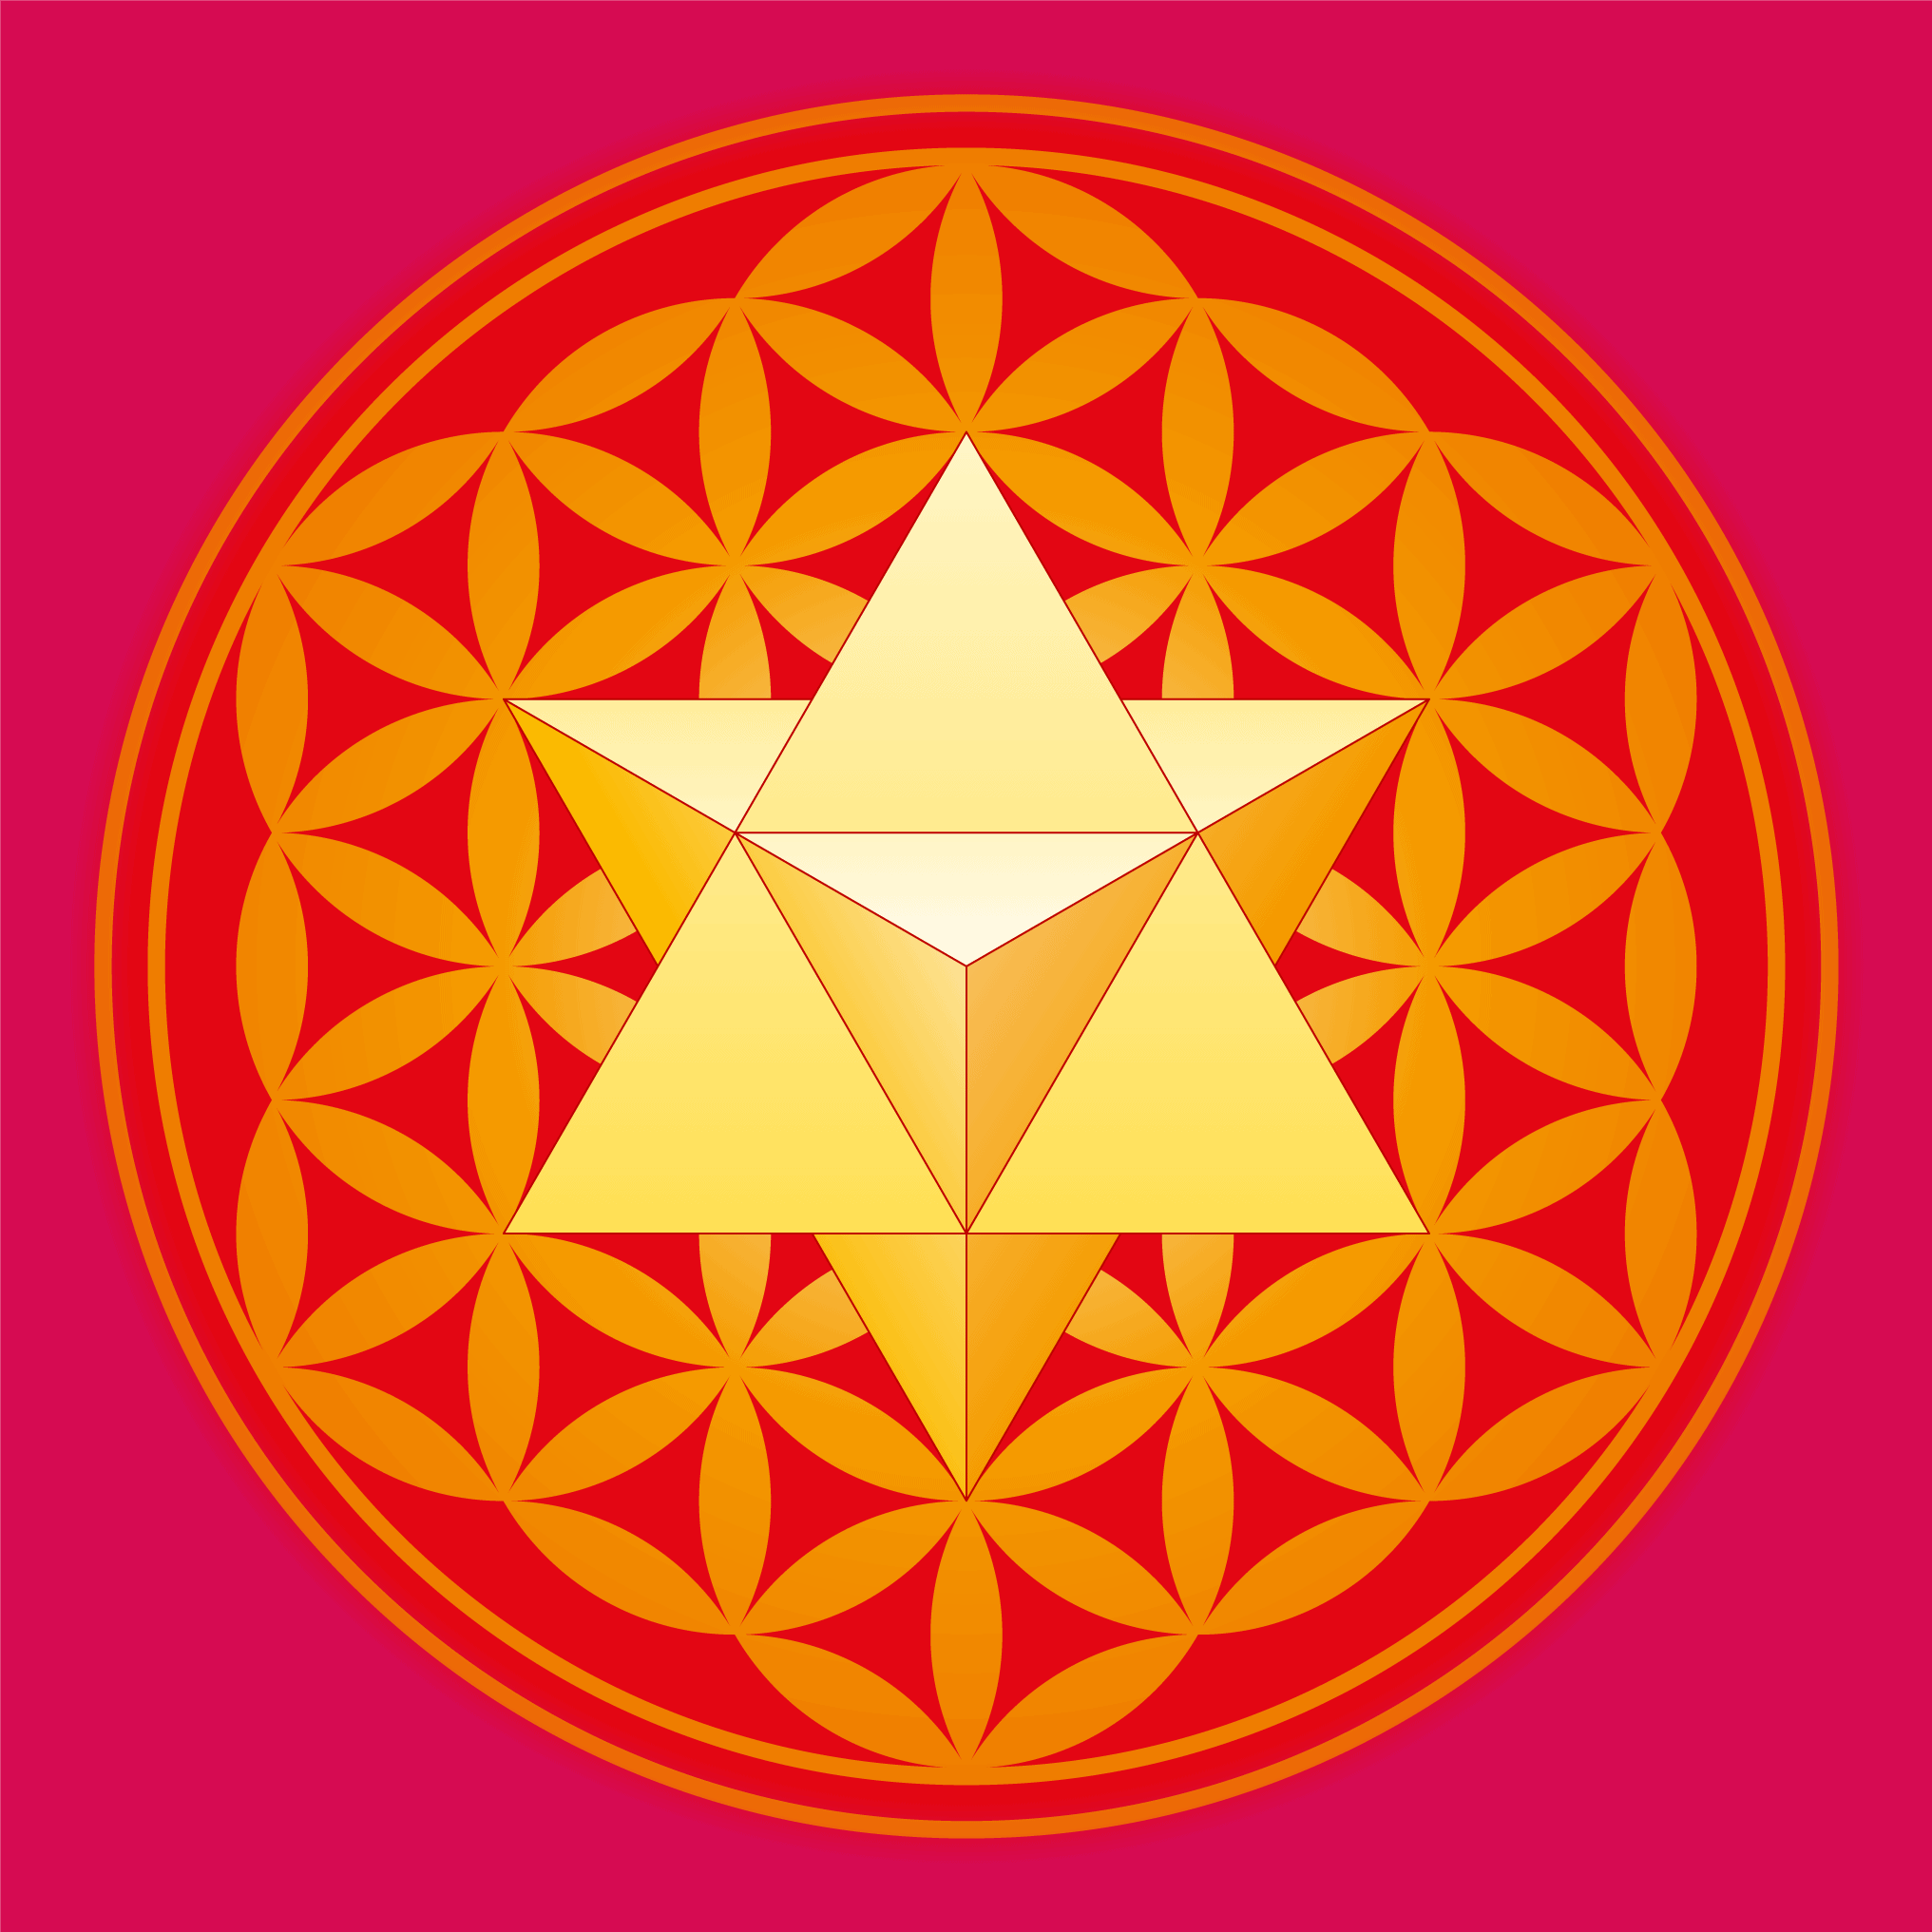 Merkaba Star in front of the Flower of Life Symbol, Two Sacred Geometry Symbols